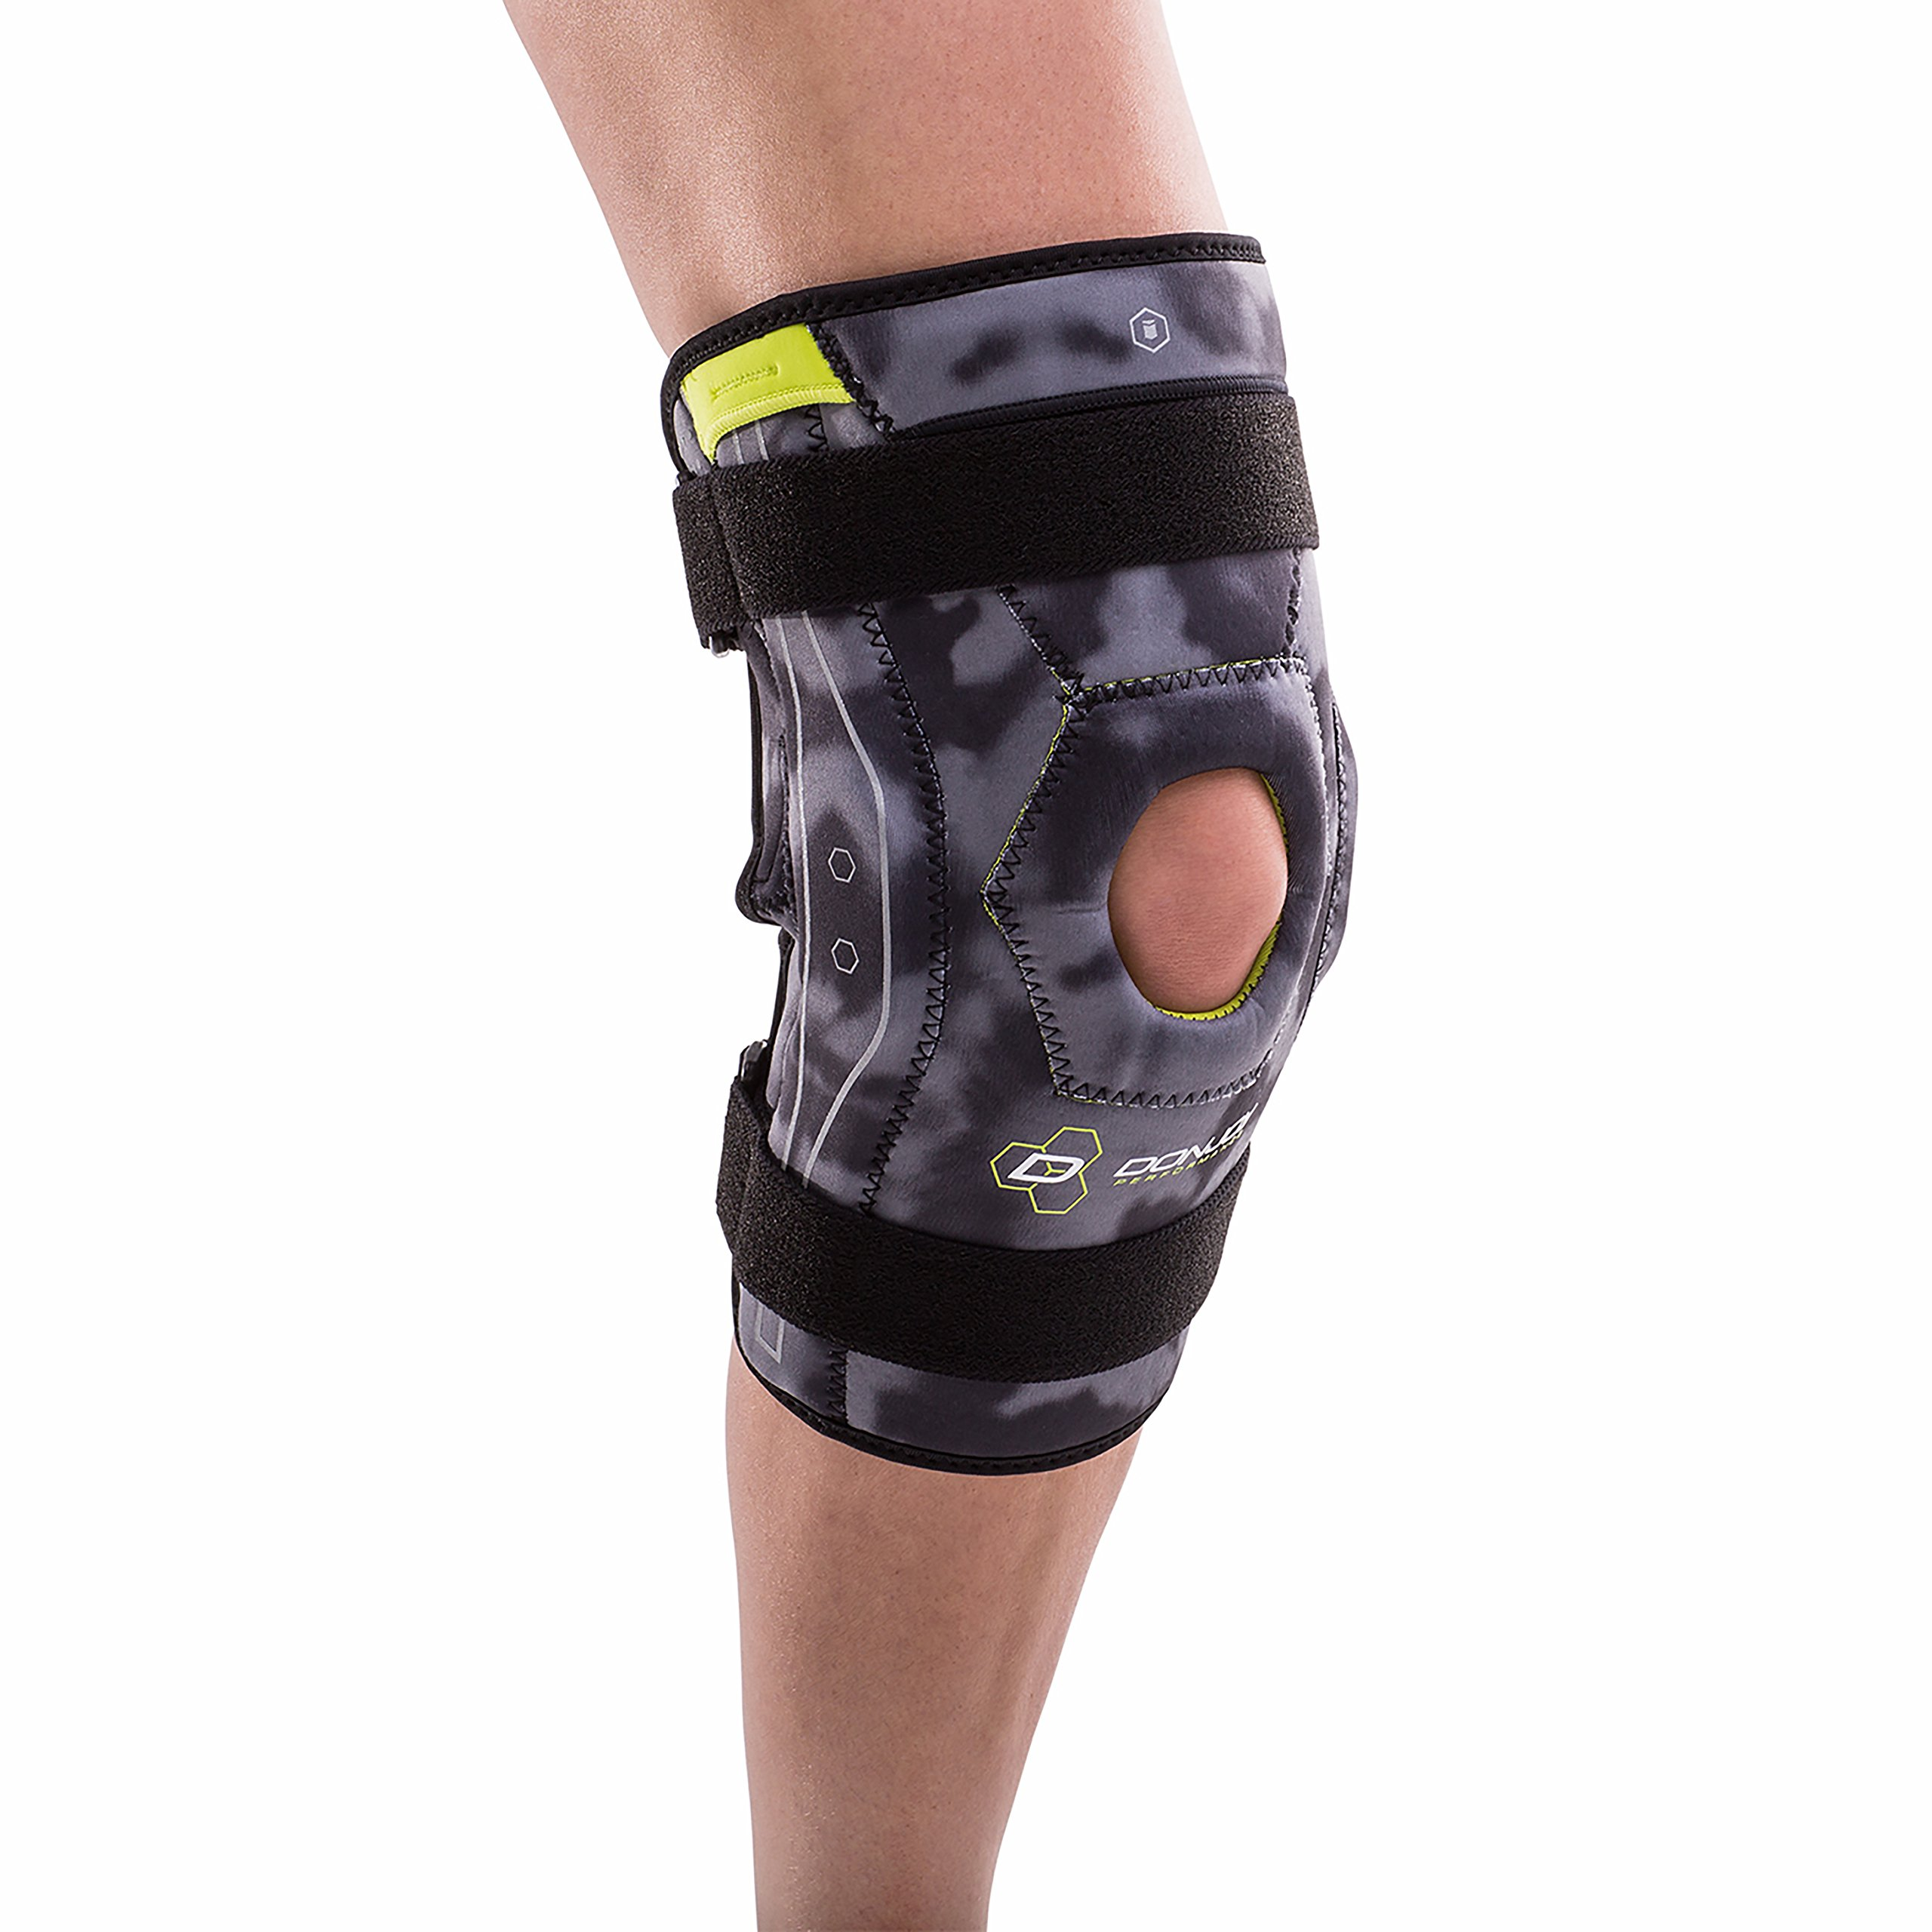 DonJoy Performance Bionic Knee Support Brace: Camo, X-Large